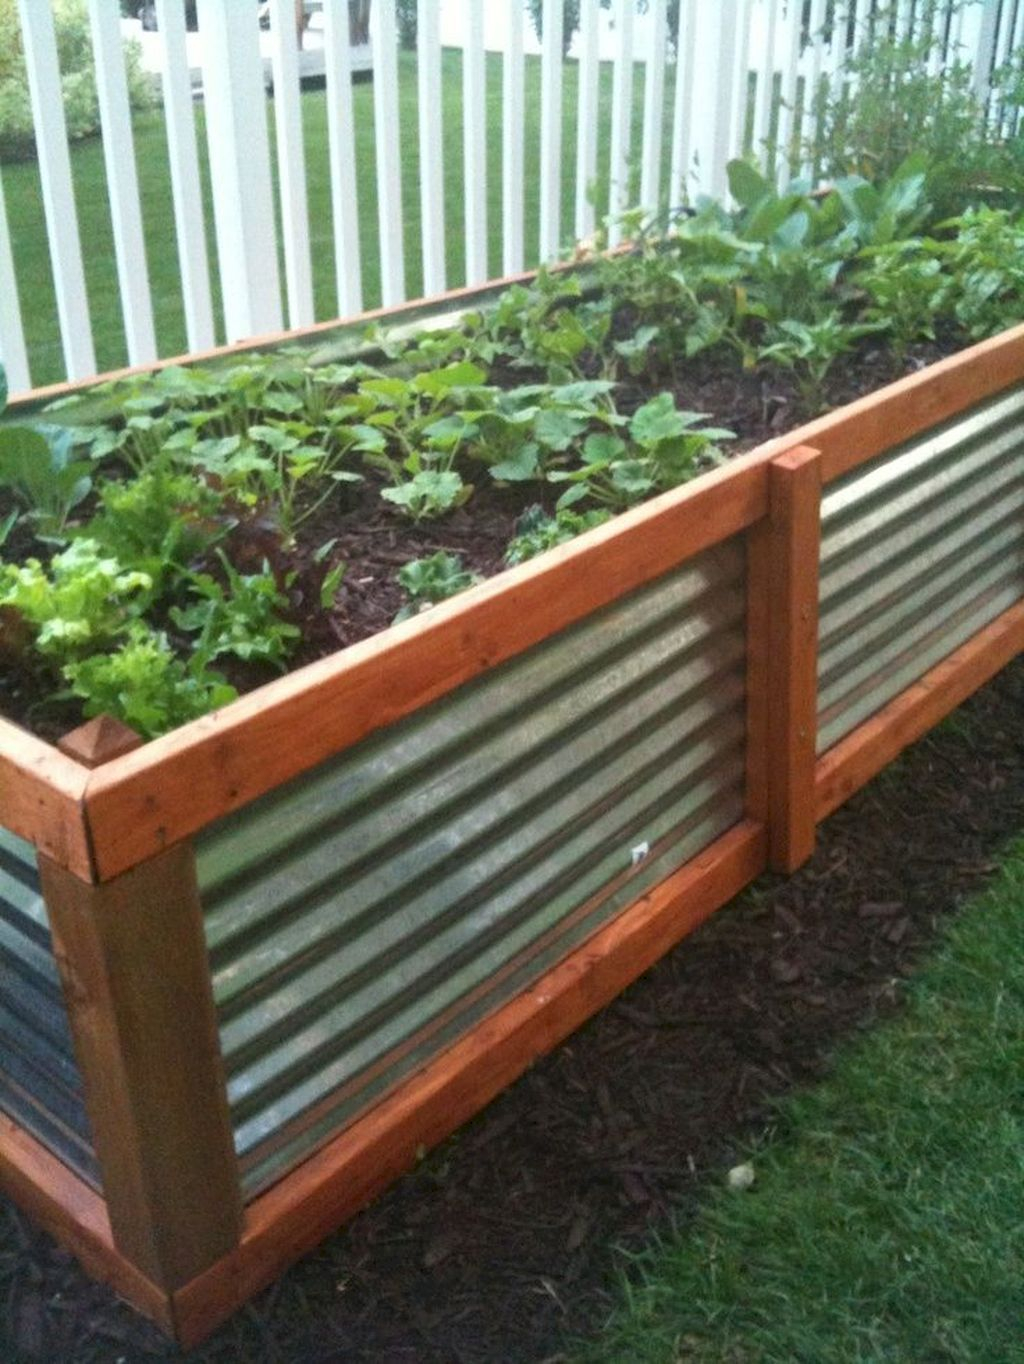 Best Raised Garden Bed For Backyard Landscaping Ideas To Try Asap25